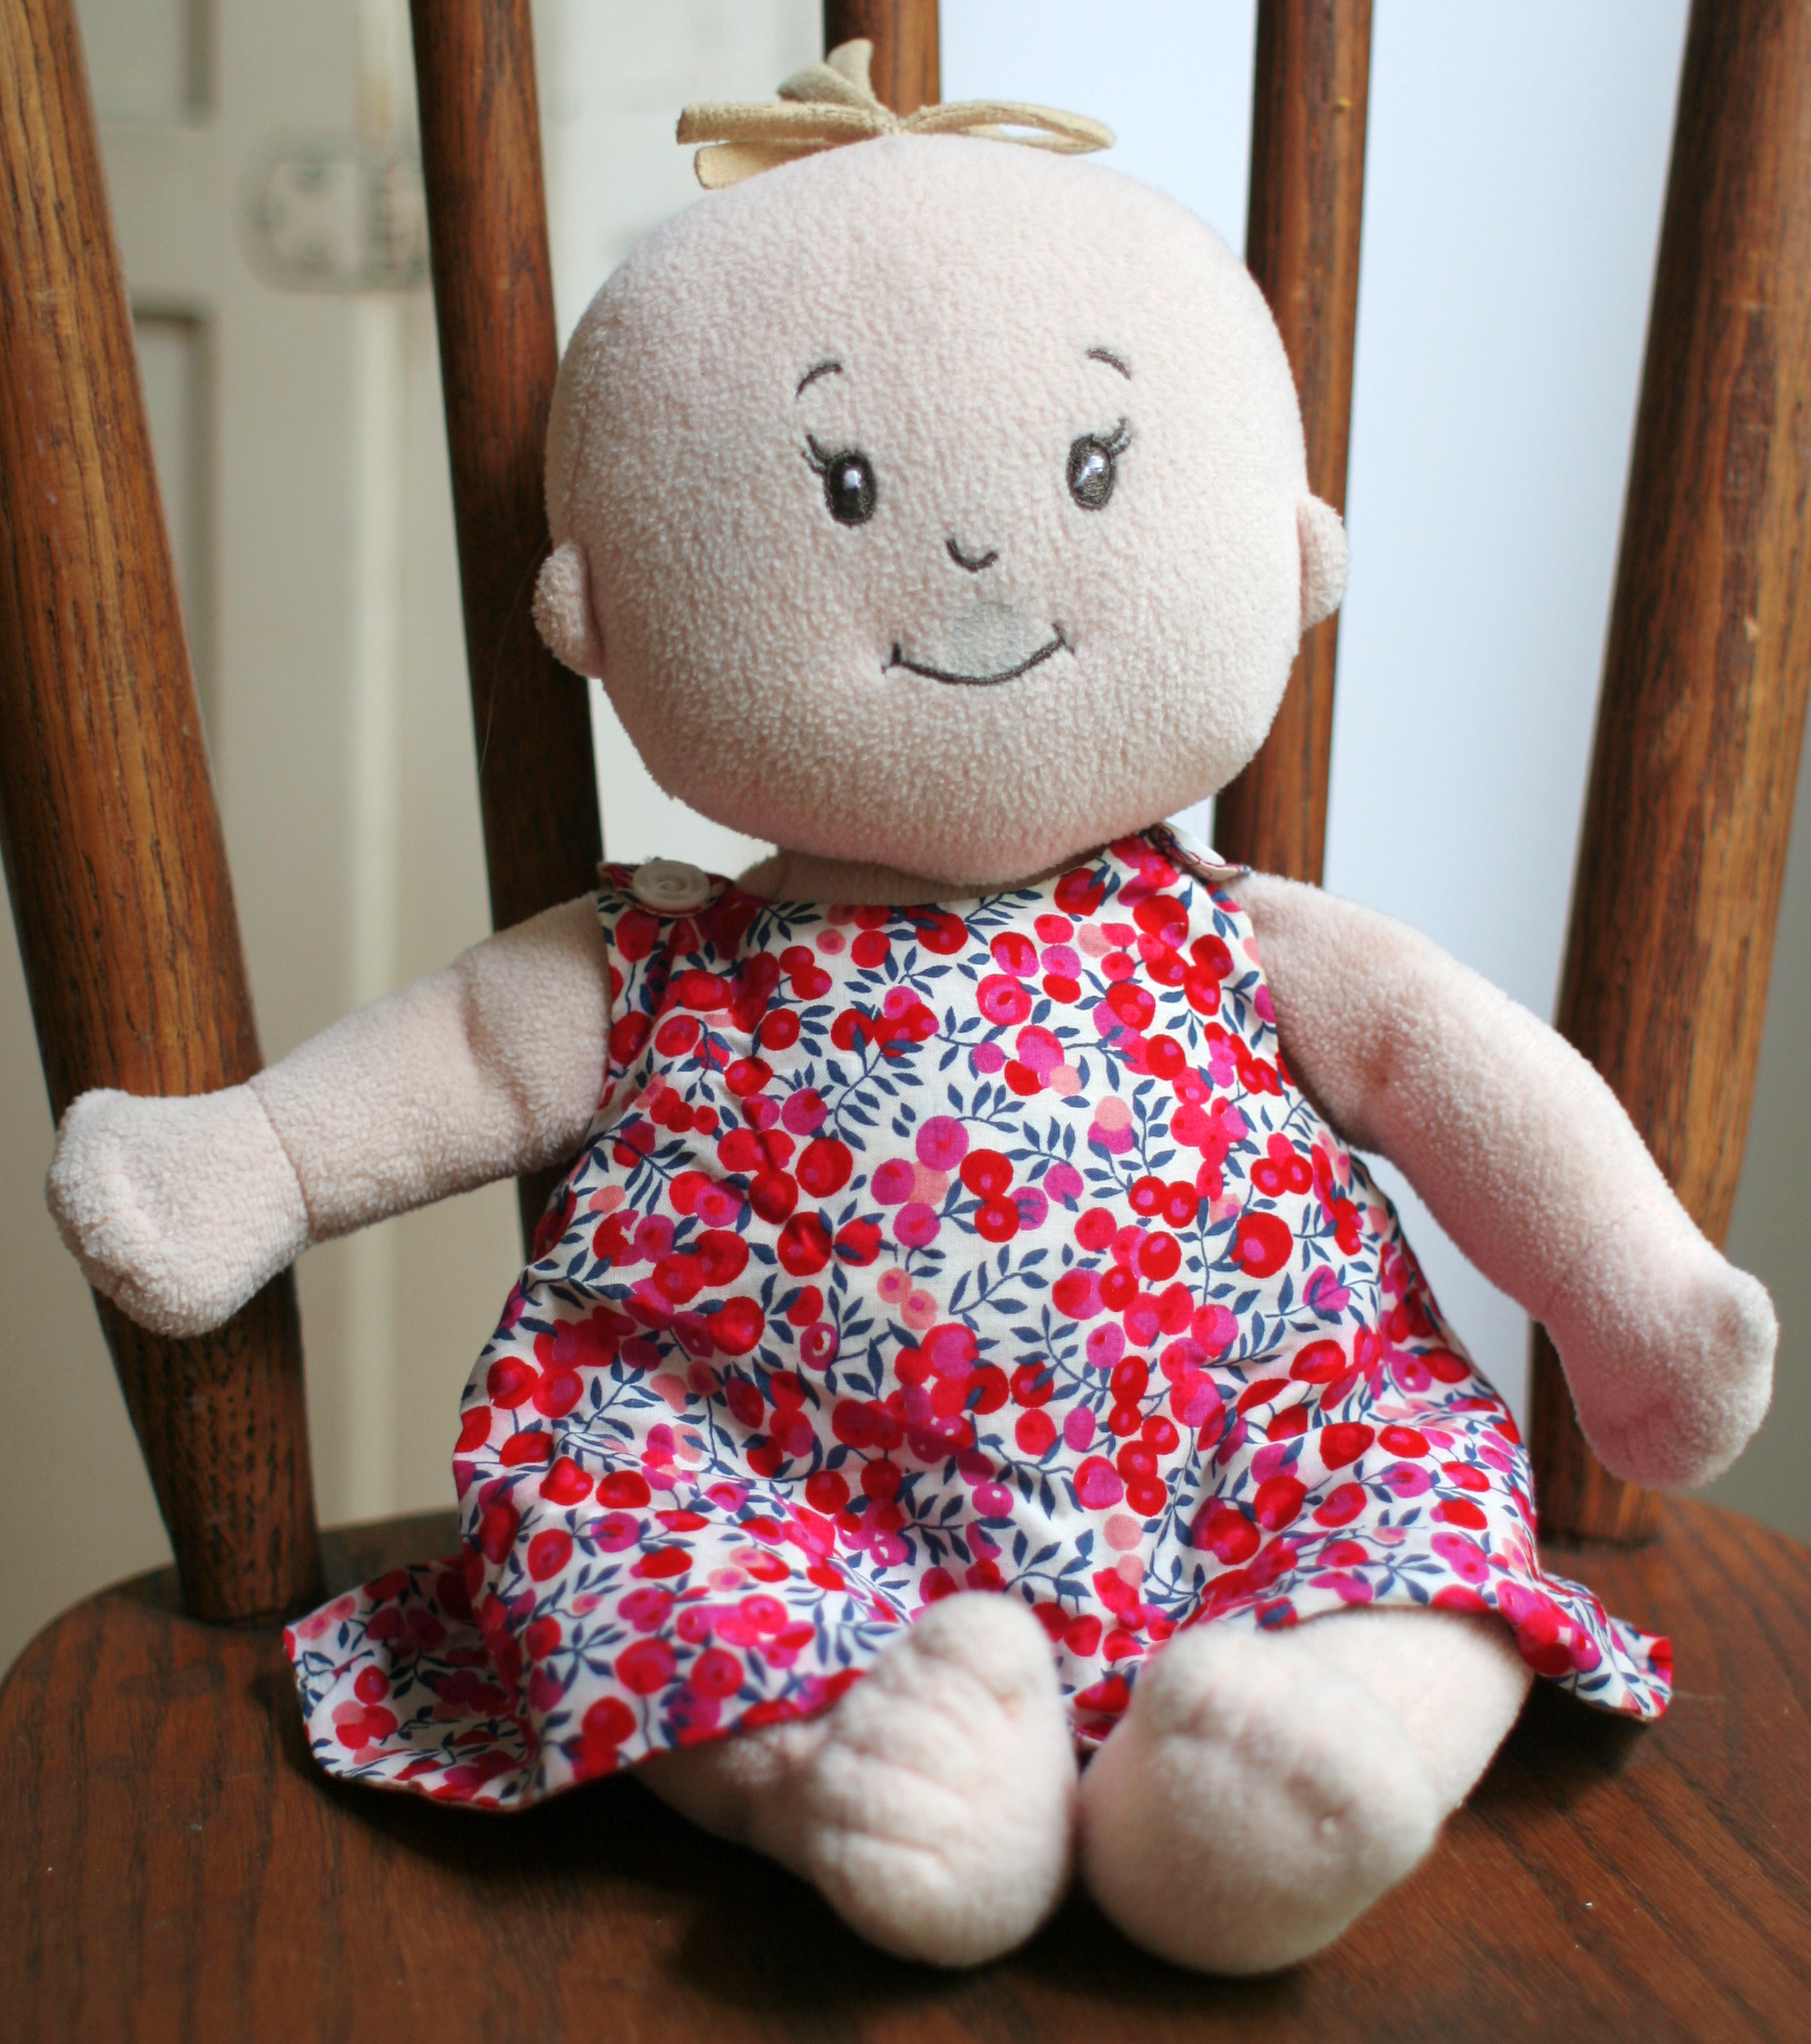 Best ideas about DIY Baby Doll . Save or Pin DIY doll clothes Now.